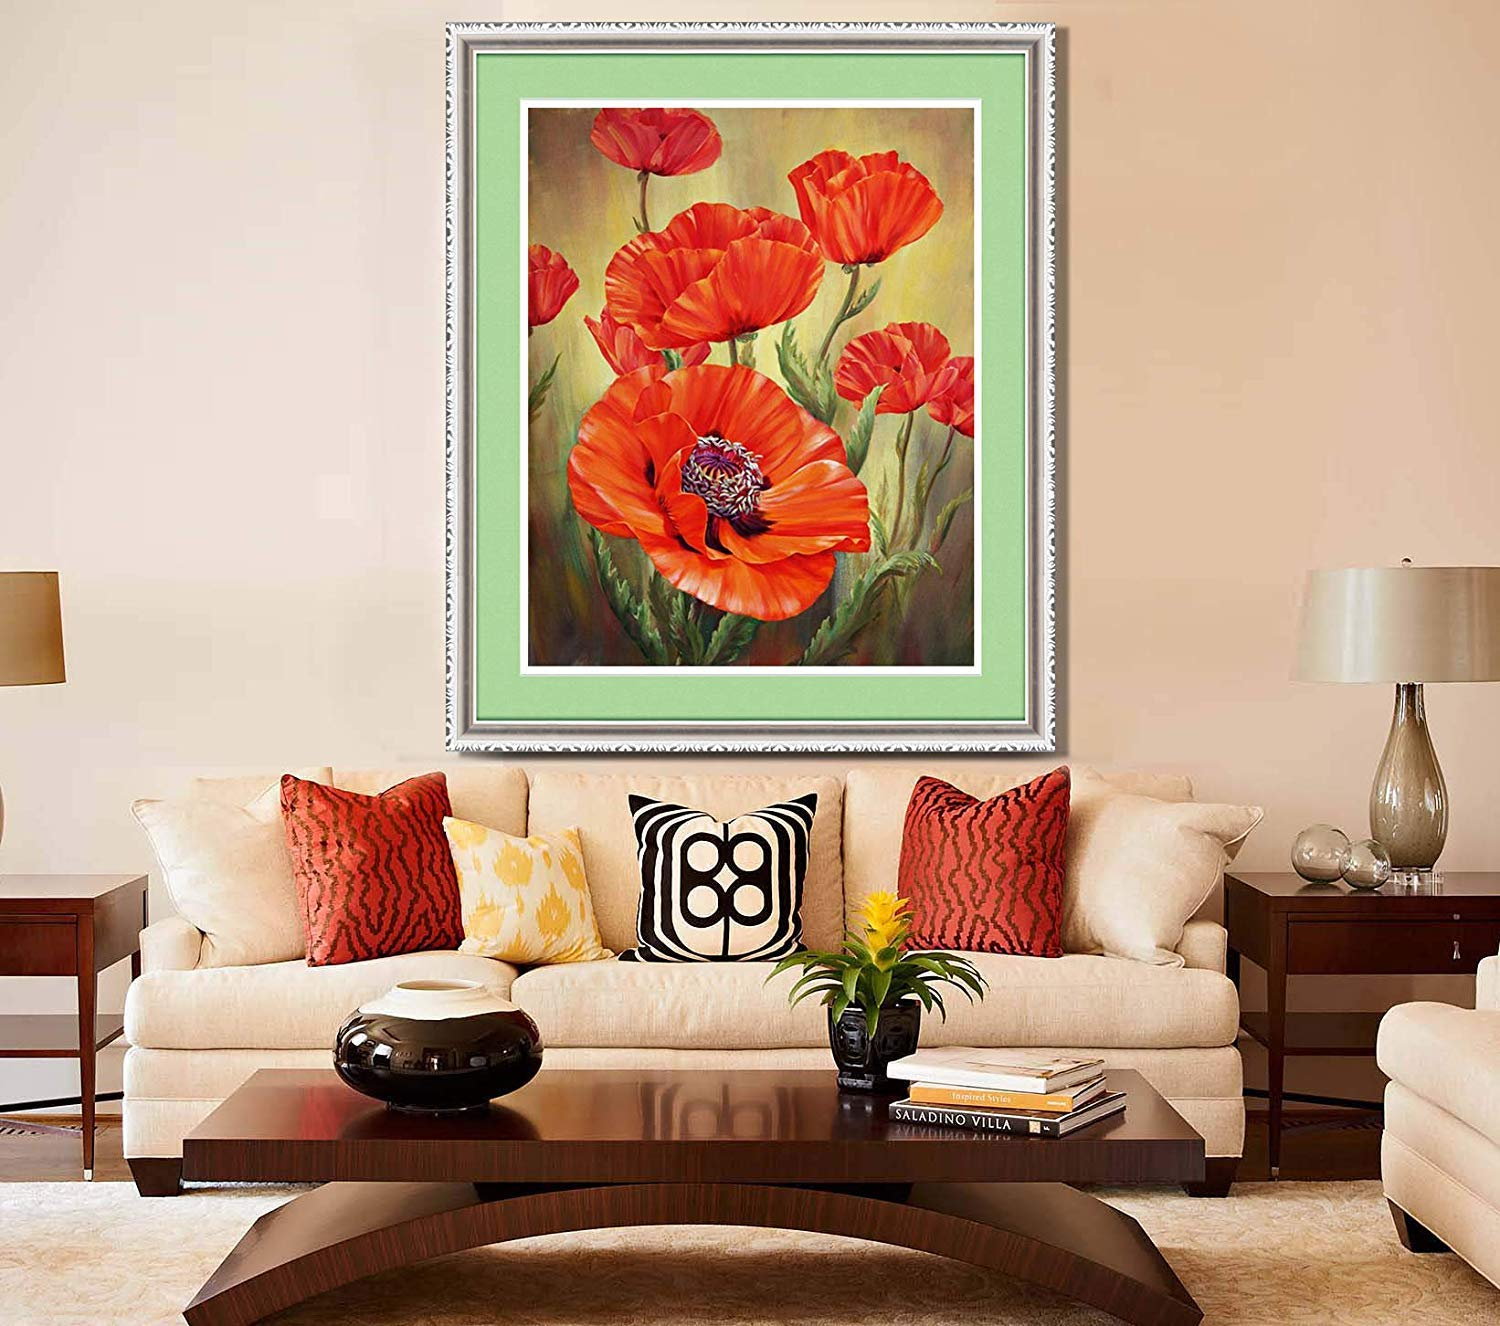 12x14 TINMI ARTS 5D Diamond Painting Poppy Flower Full Round Kits for Adults Mosaic Cross Stitch Kits Crystal Embroidery Kits Home Wall D/écor